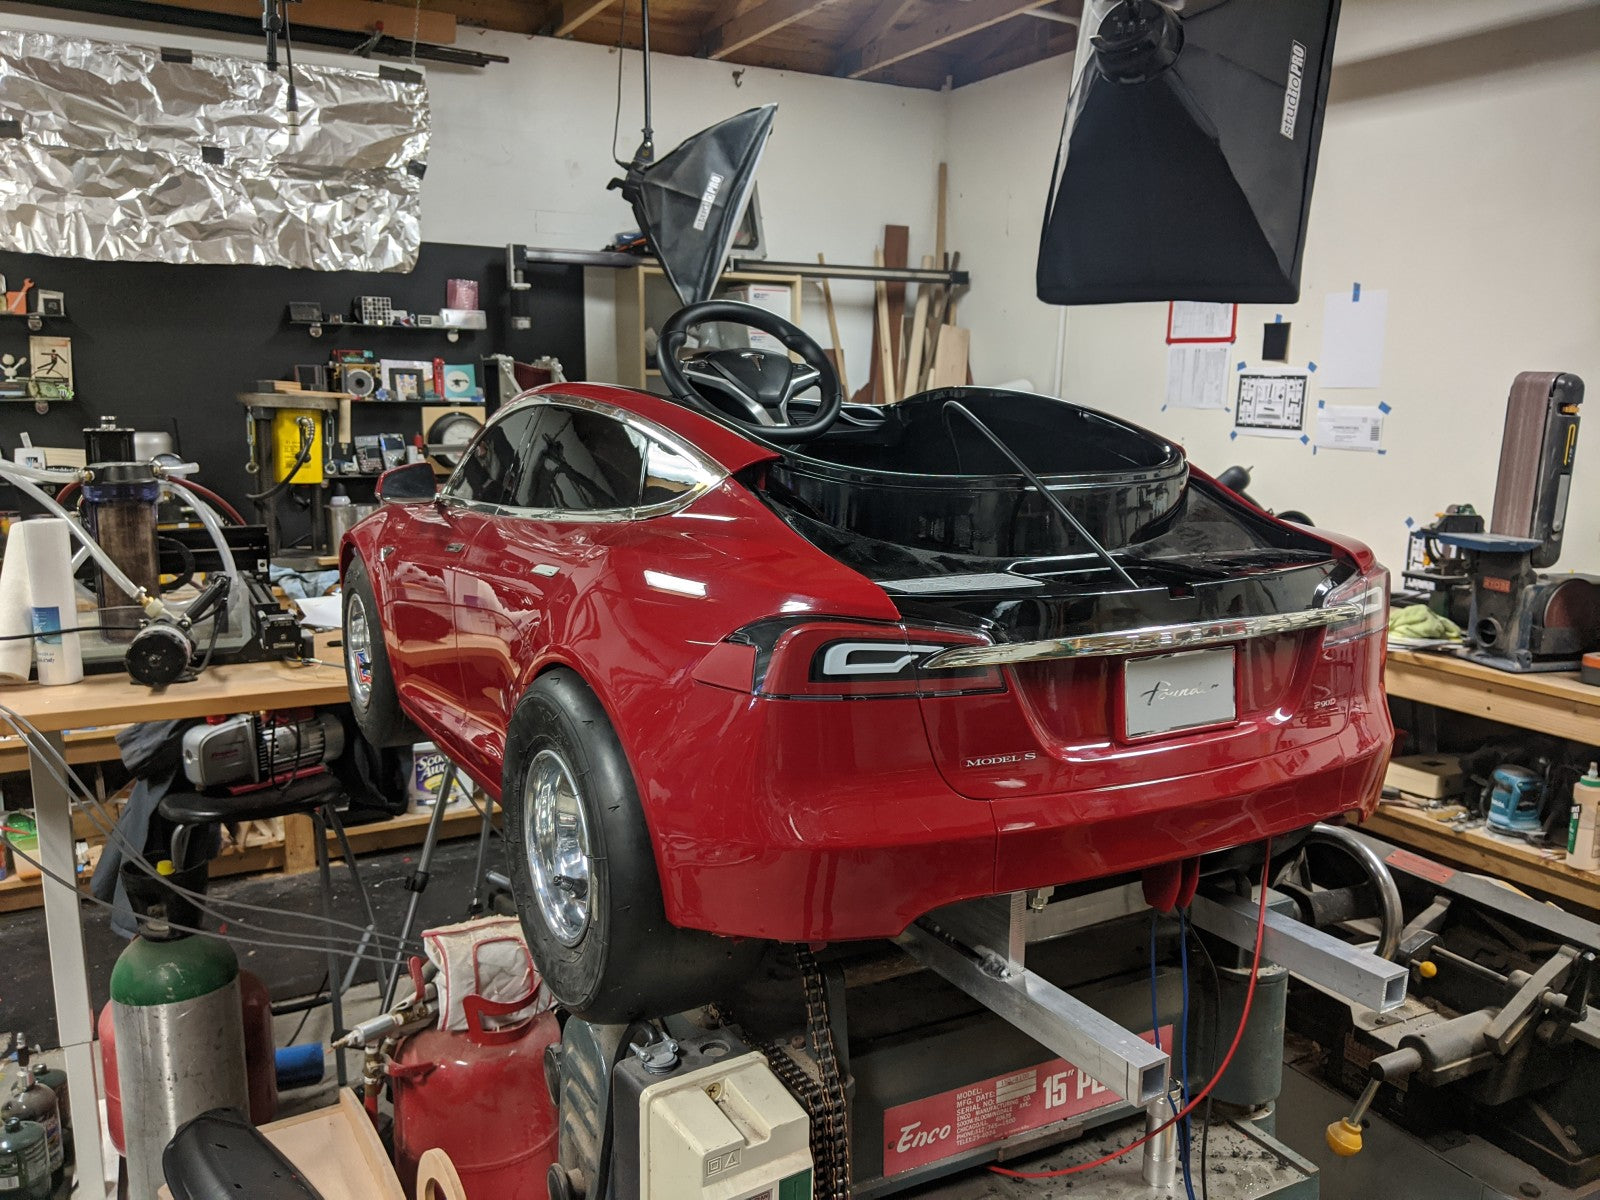 Radio Flyer Toy Tesla Is Being Modified Into A Car With Fast Acceleration